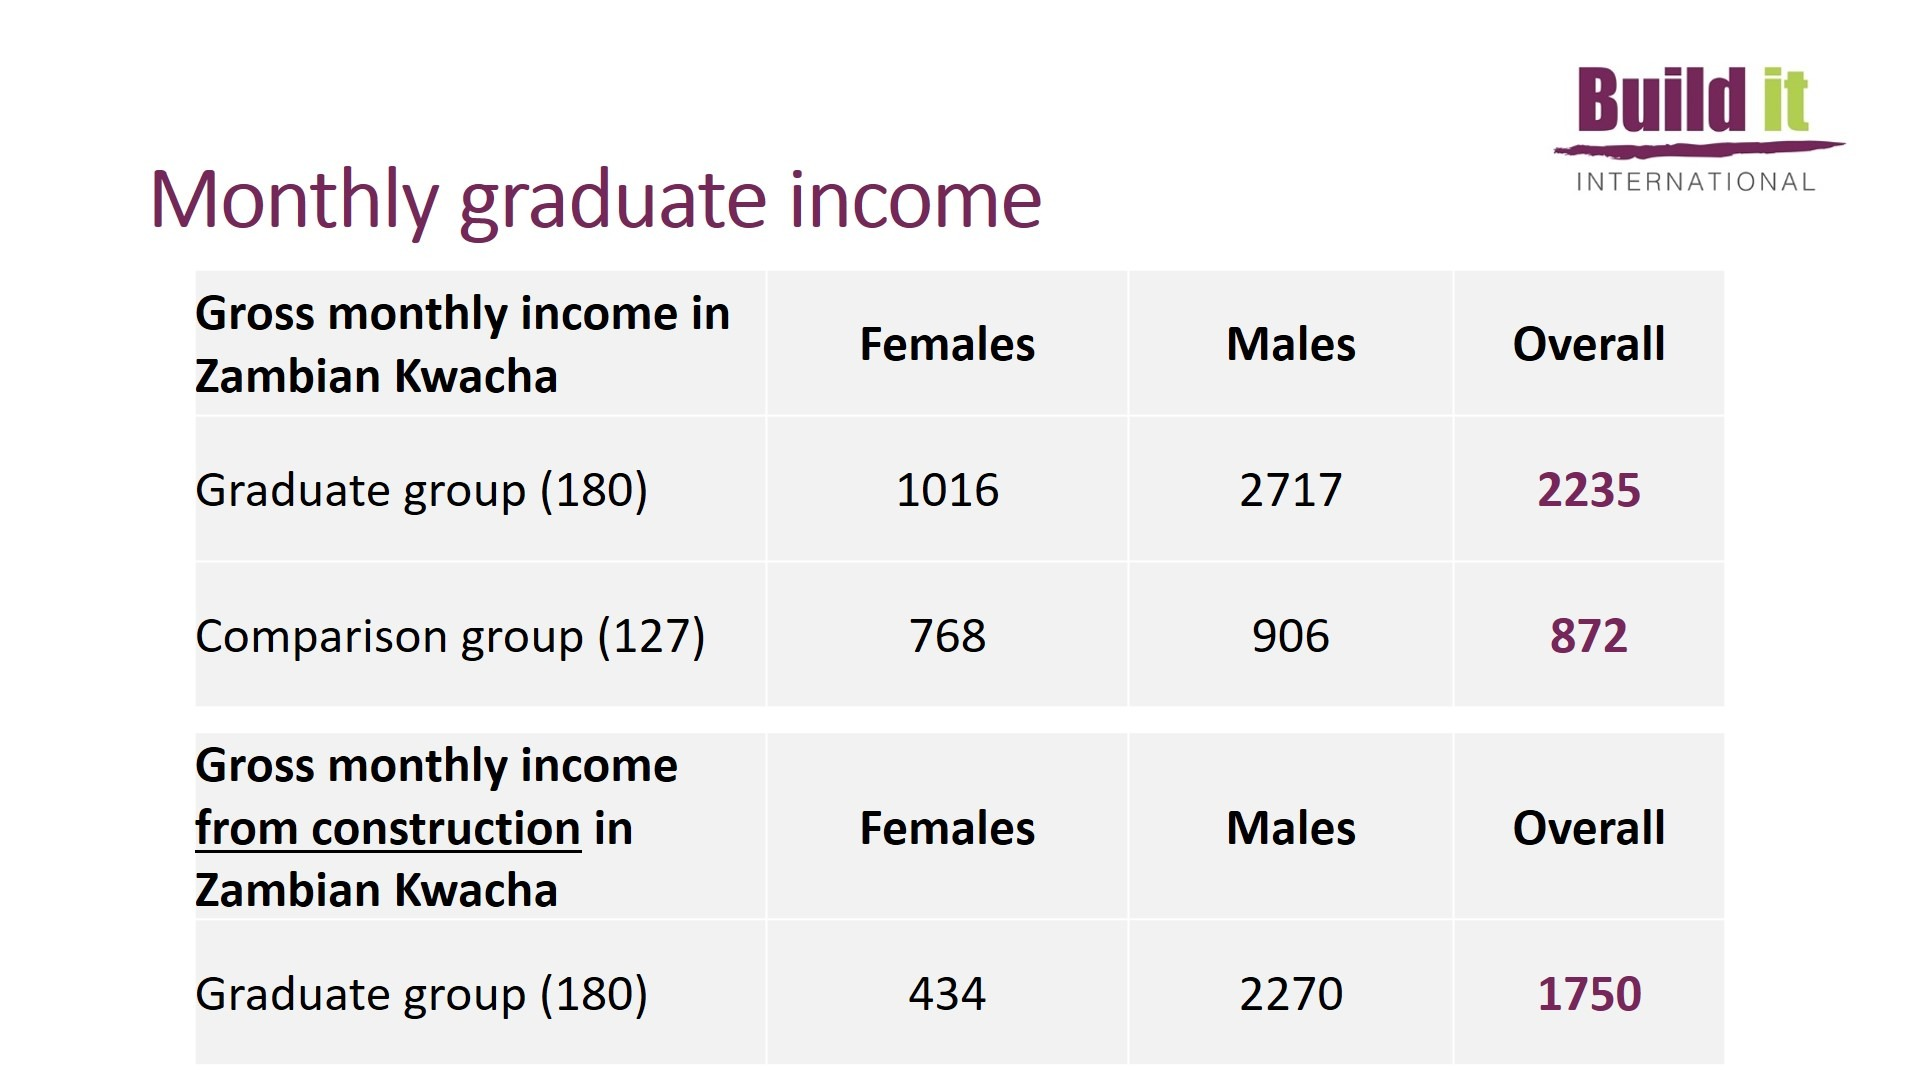 Table showing Monthly Graduate Income - 2020 Impact Study